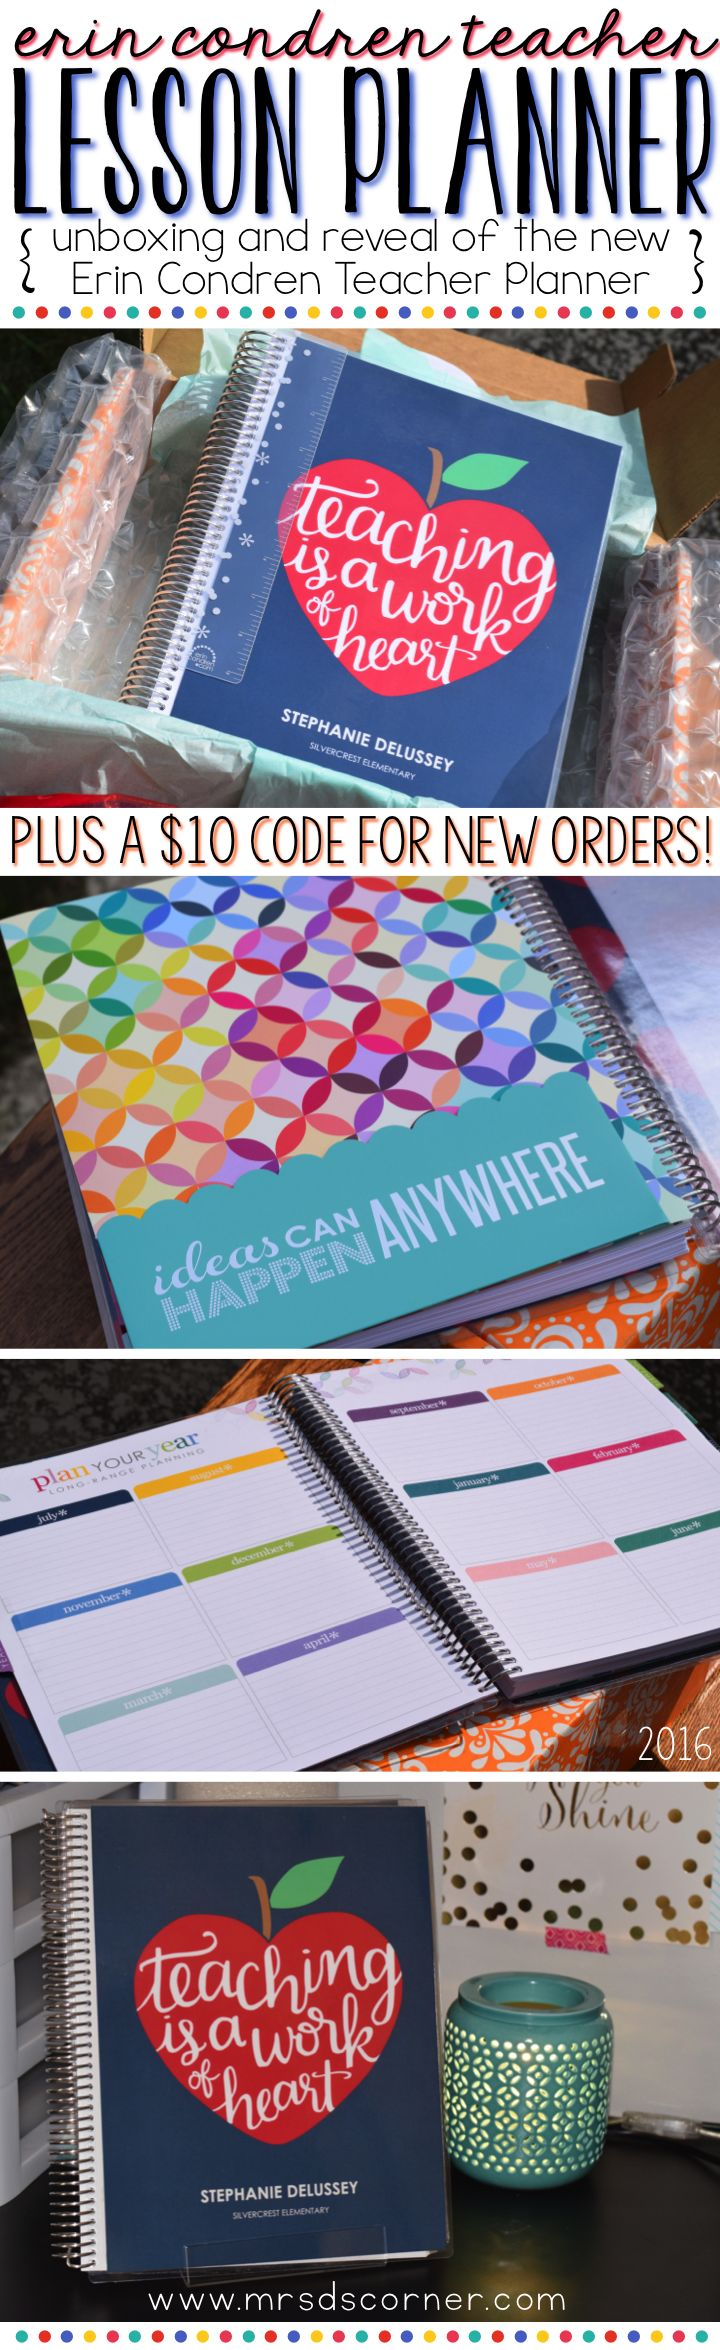 Take a look inside the new Erin Condren Teacher Planner with a blog post at Mrs. D's Corner. Beautiful colors, inspirational quotes, and made just for teachers! Includes a $10 off code for new orders!